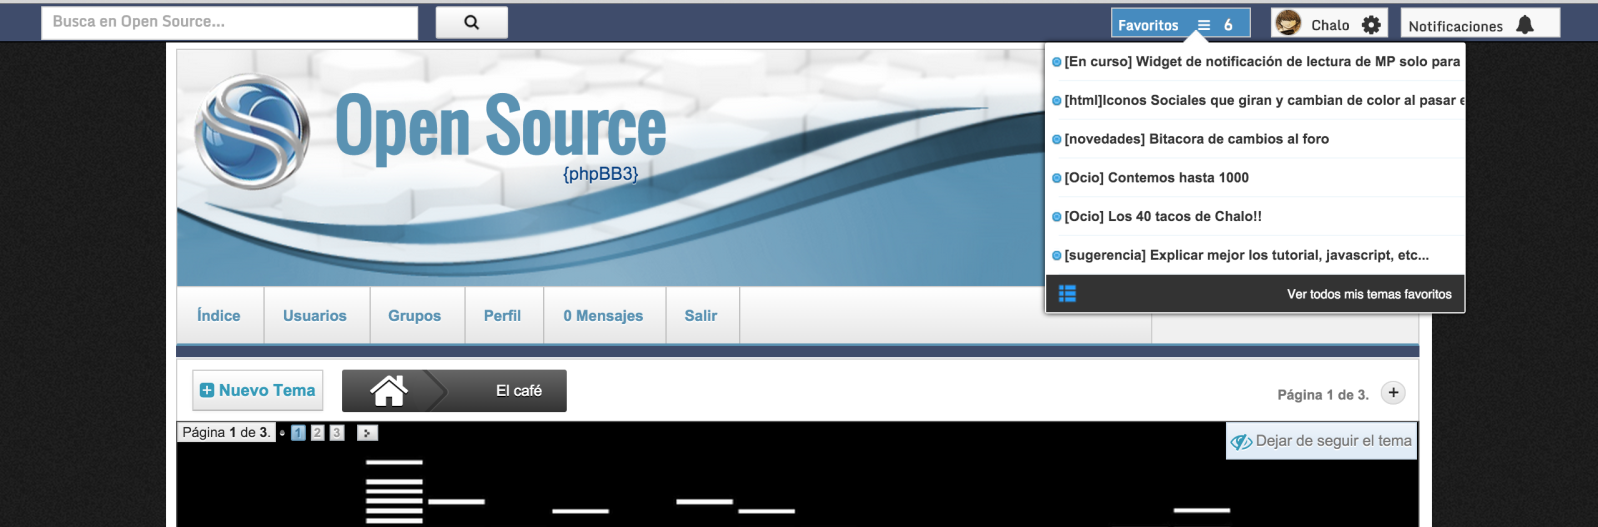 phpBB3 Open Source Zv945g